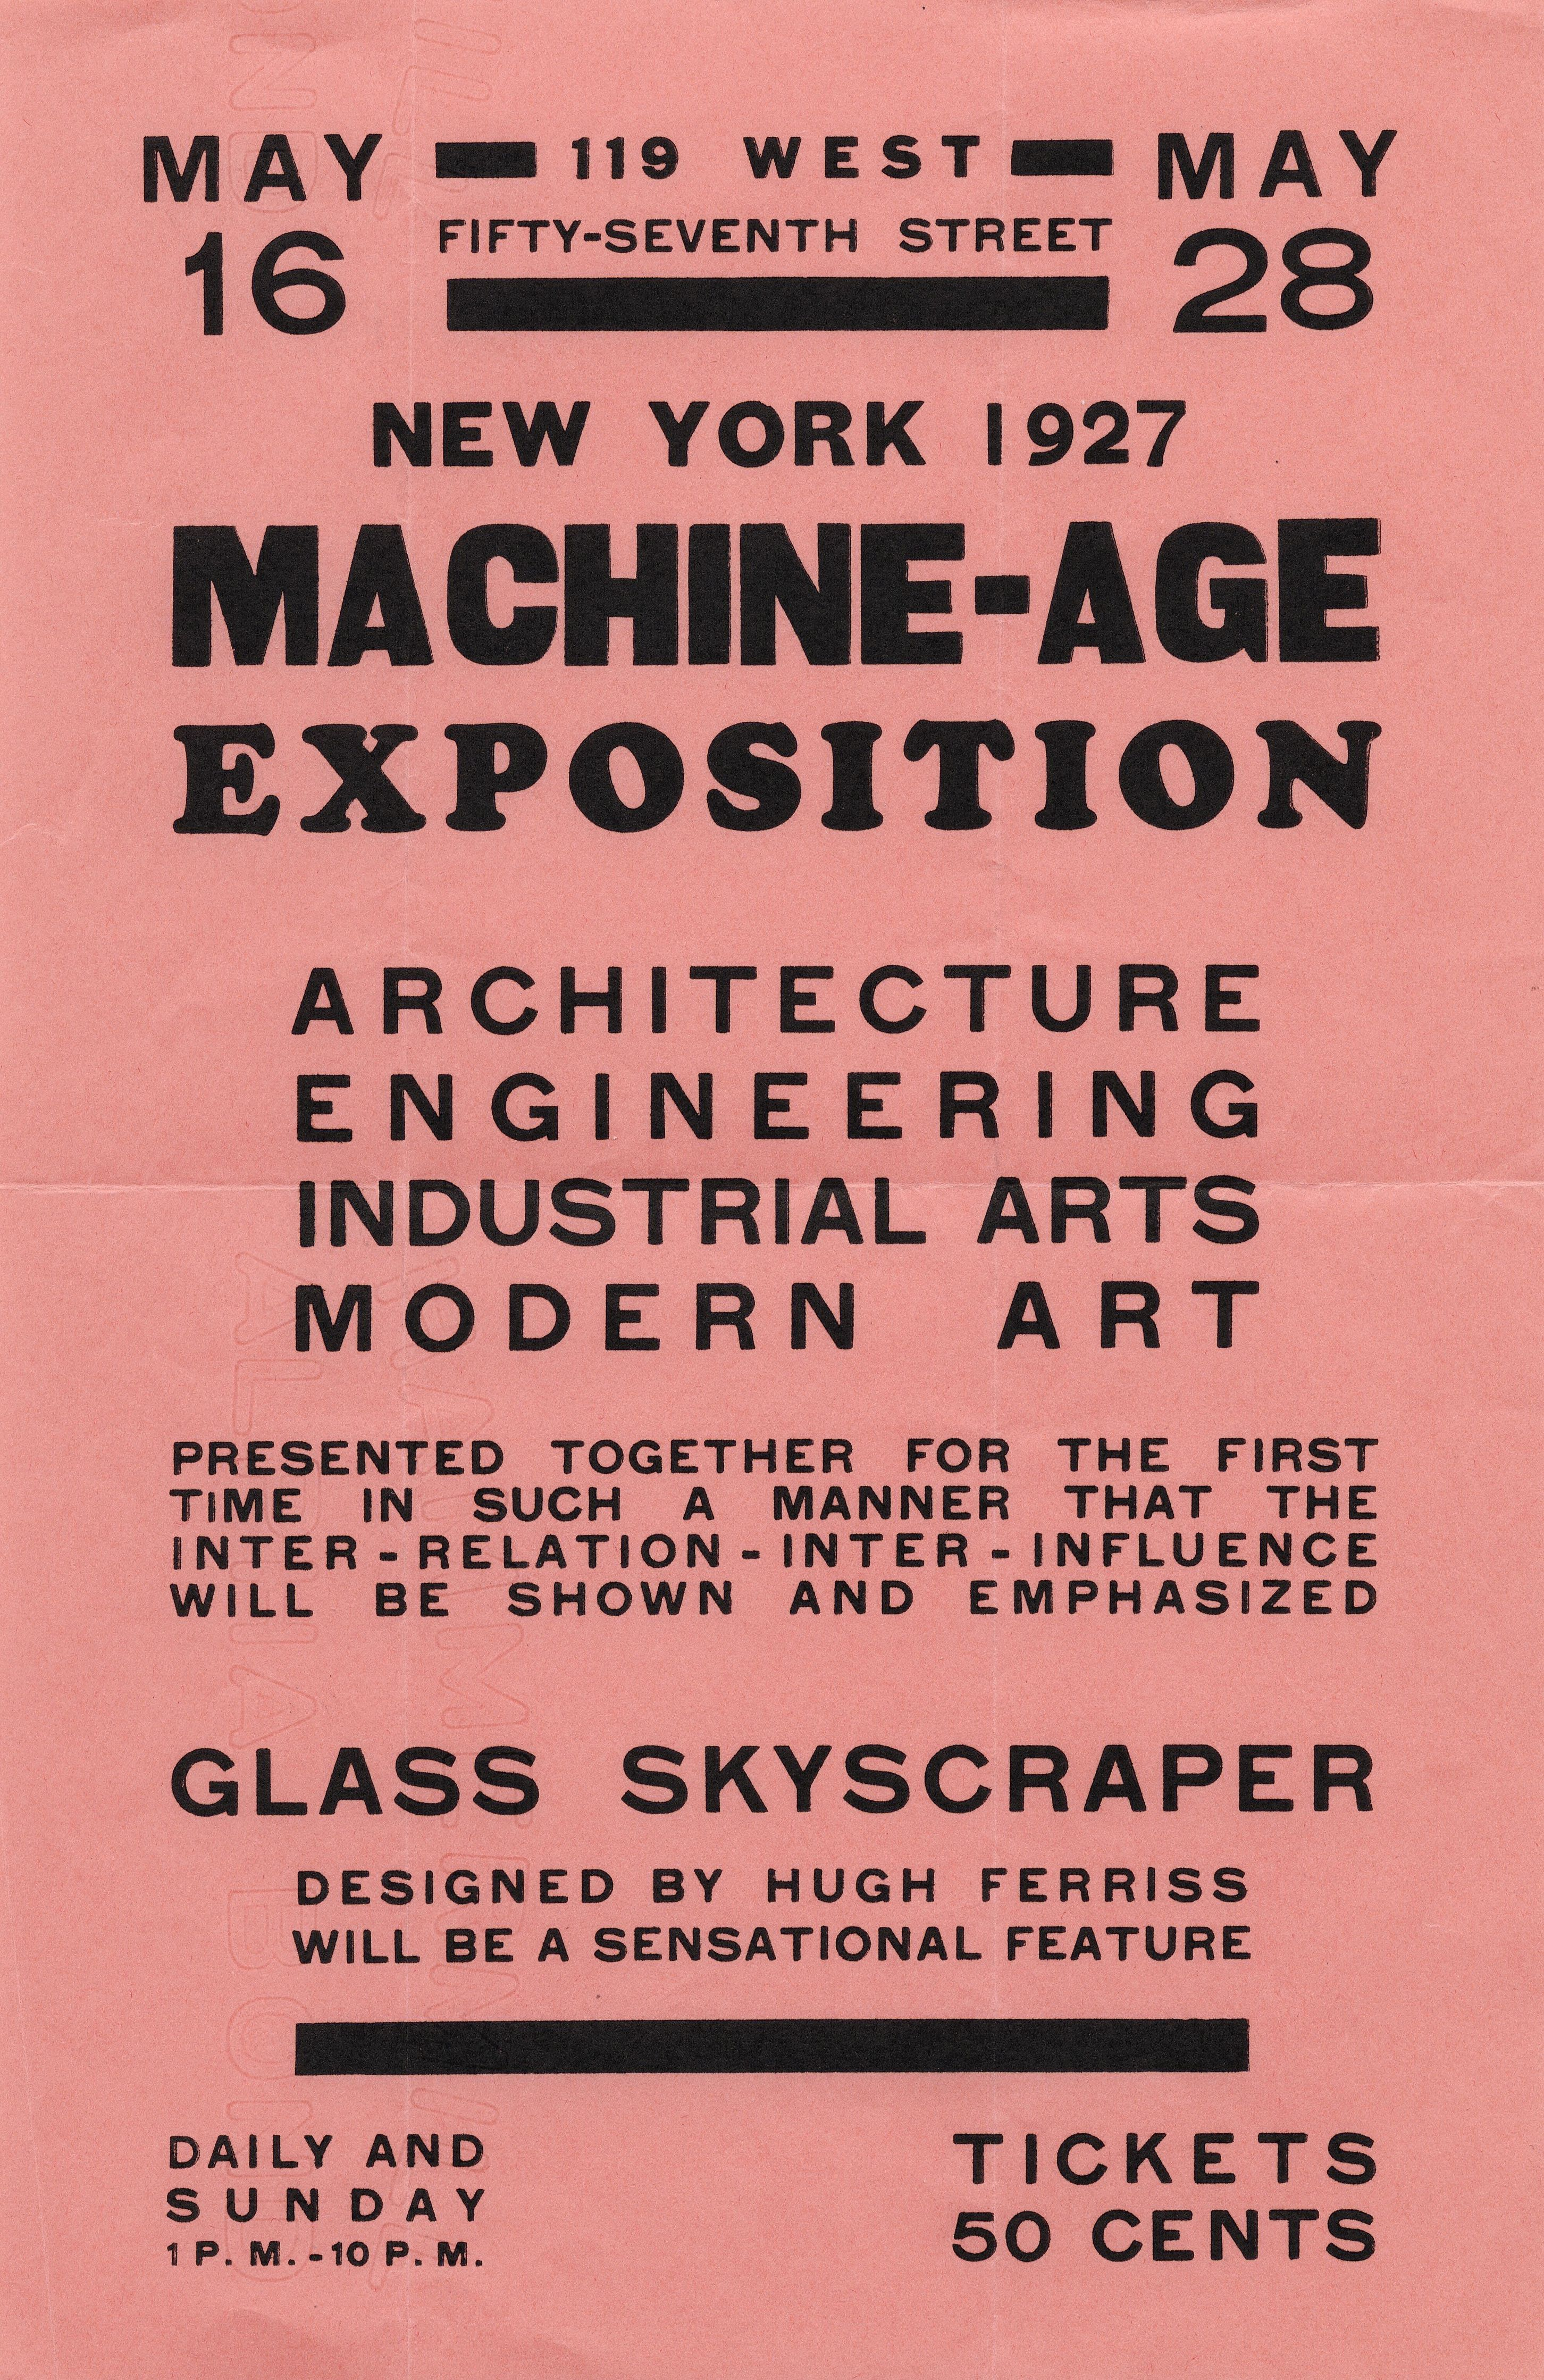 Machine-Age Exposition : Poster. — New York, 1927